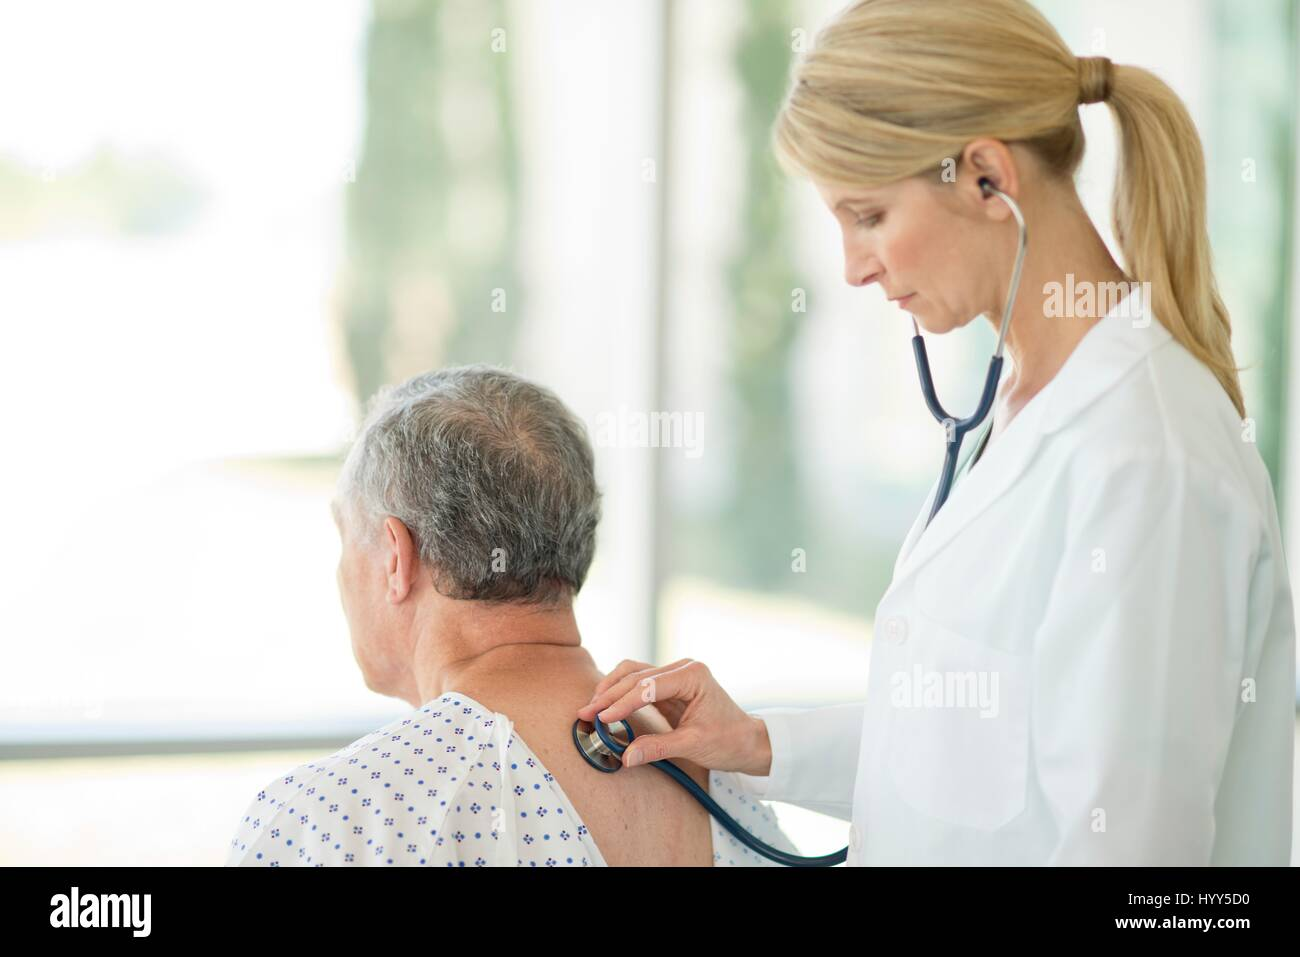 Female doctor using stethoscope on male patient. - Stock Image